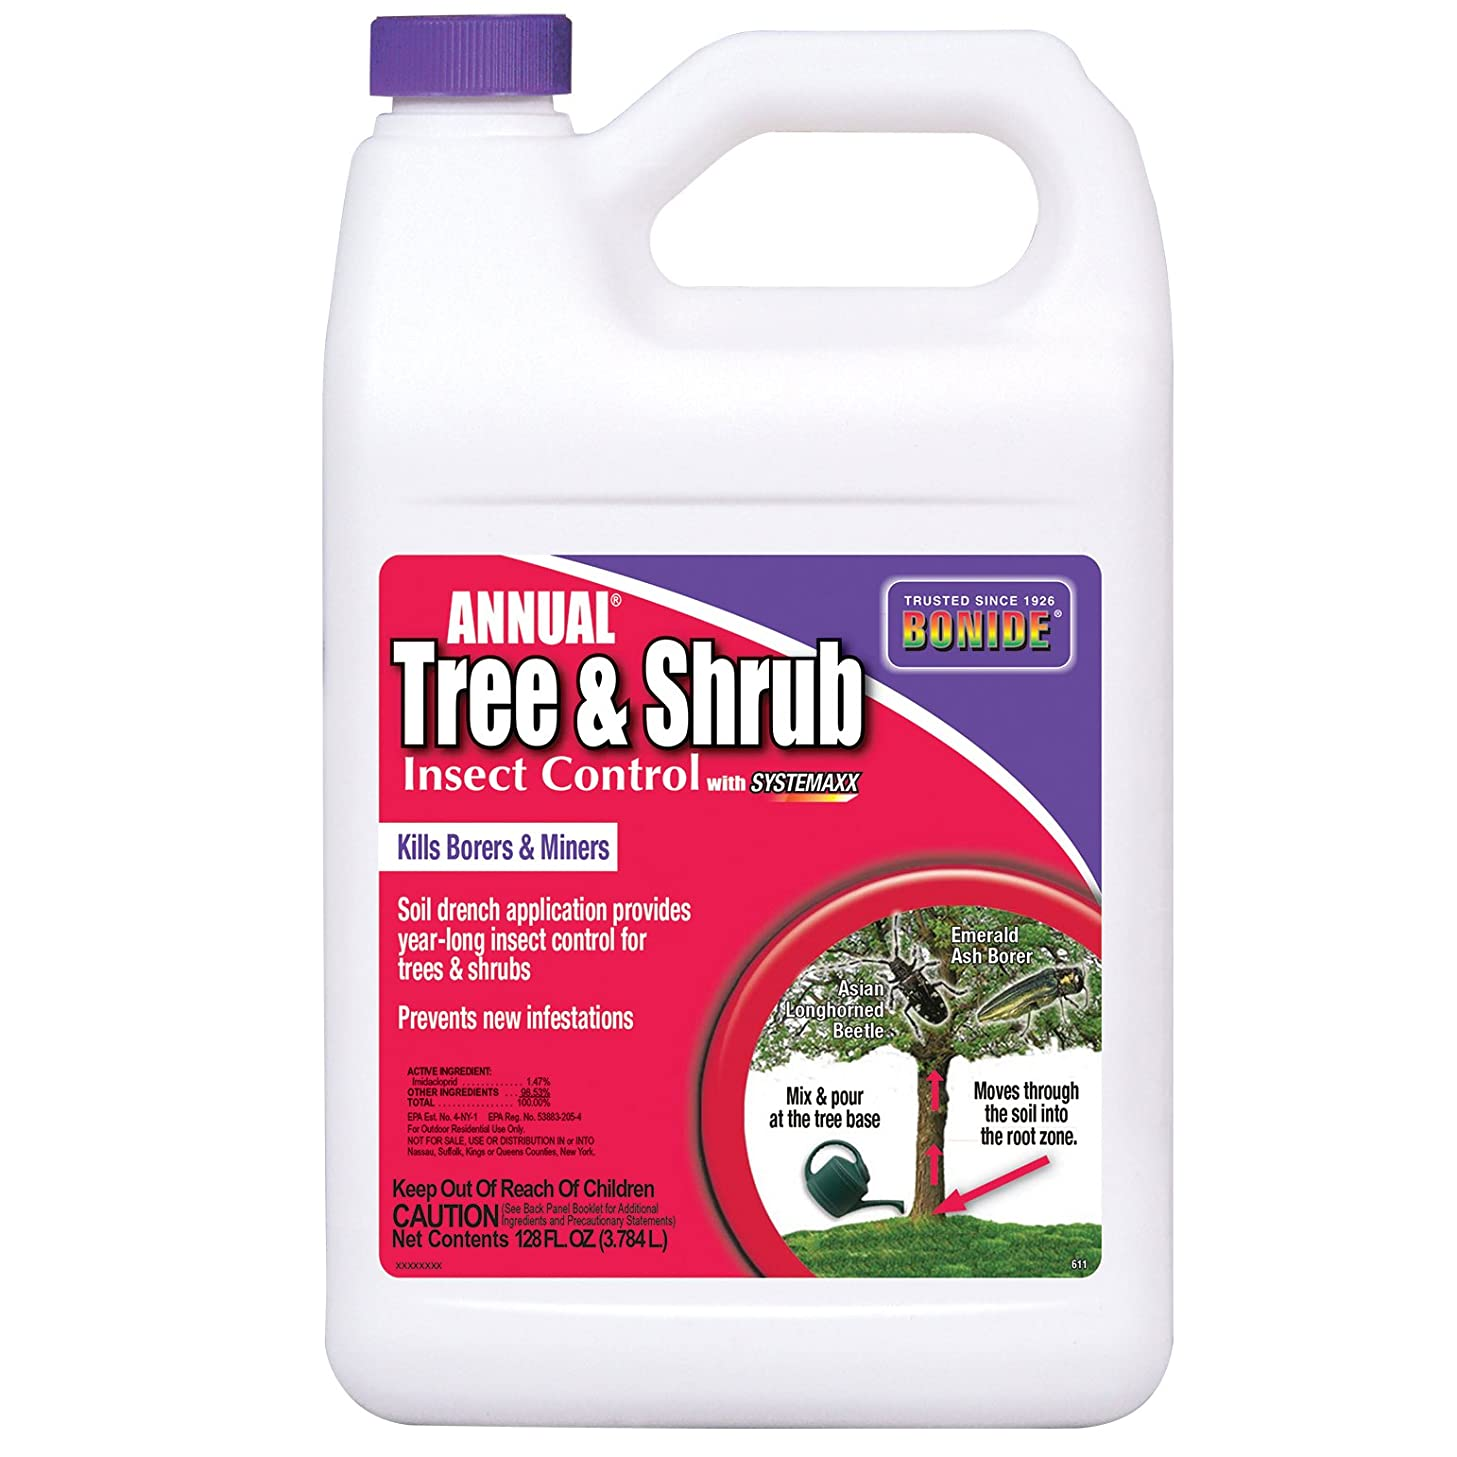 Bonide BND611 Annual_Tree_and_Shrub_Insect_Control Insecticide/Pesticide_Cocentrate, 1_gal, LAWNGARD